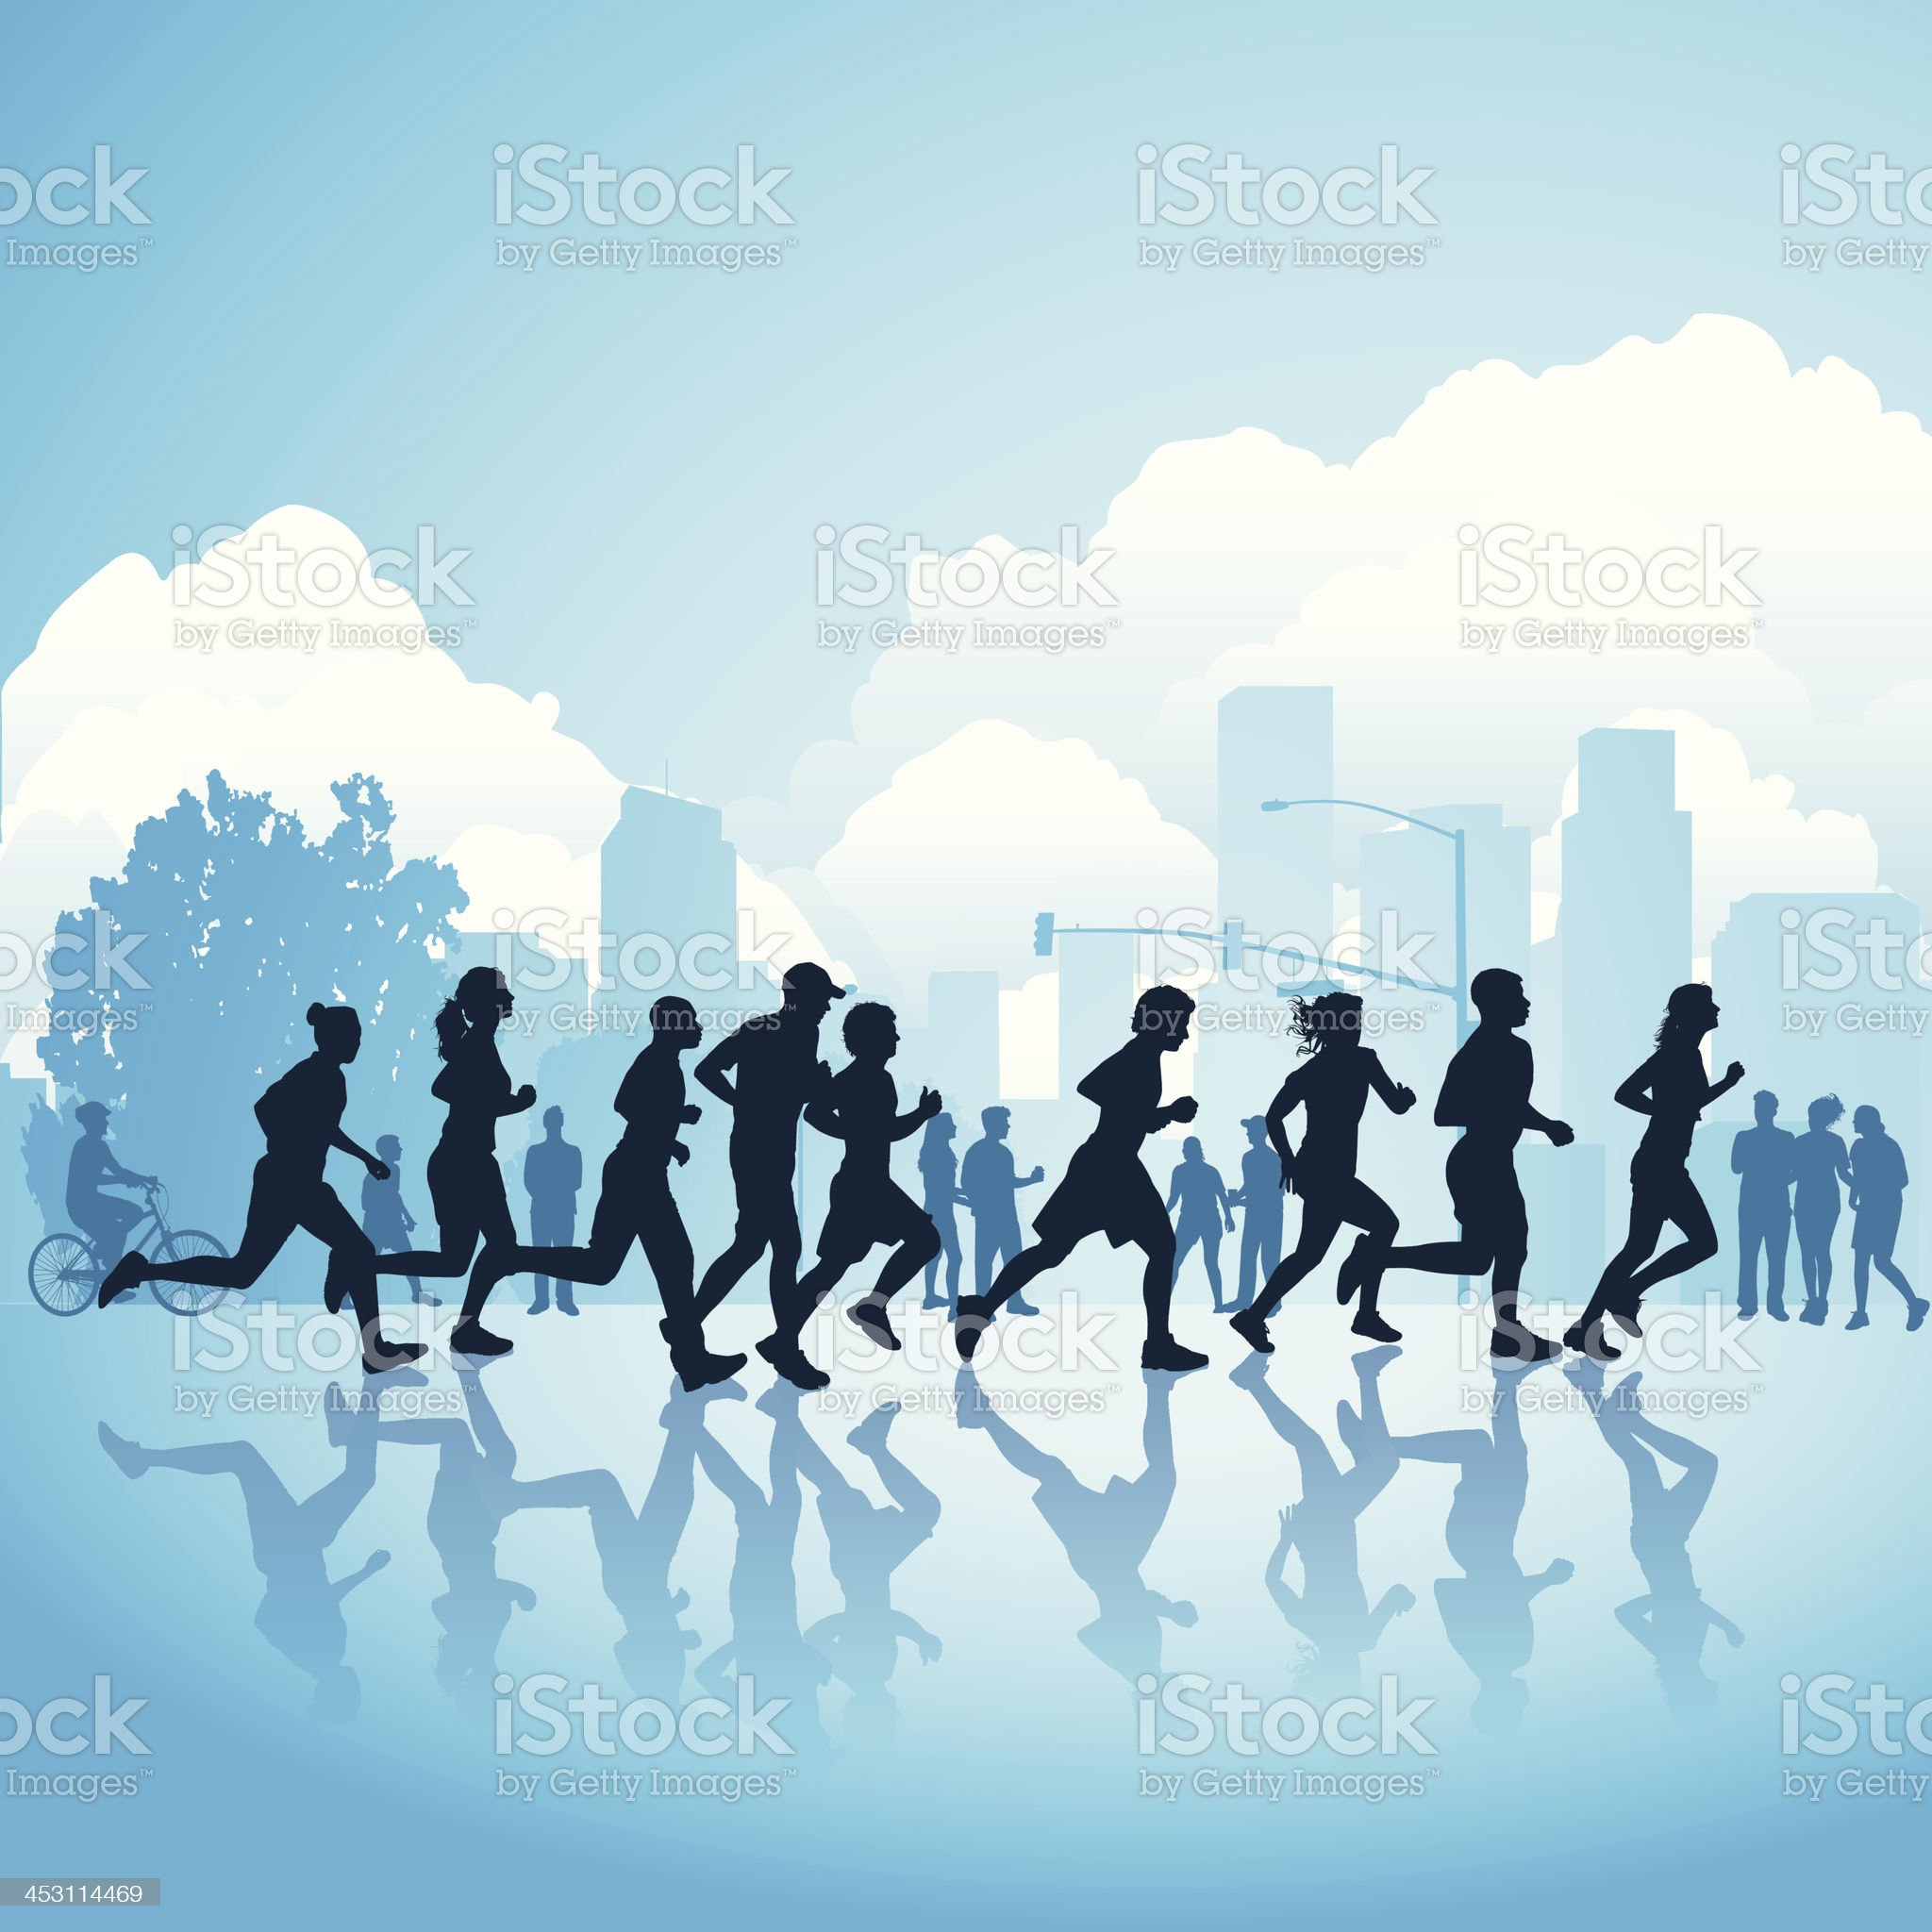 Silhouettes of people running through the city royalty-free stock vector art